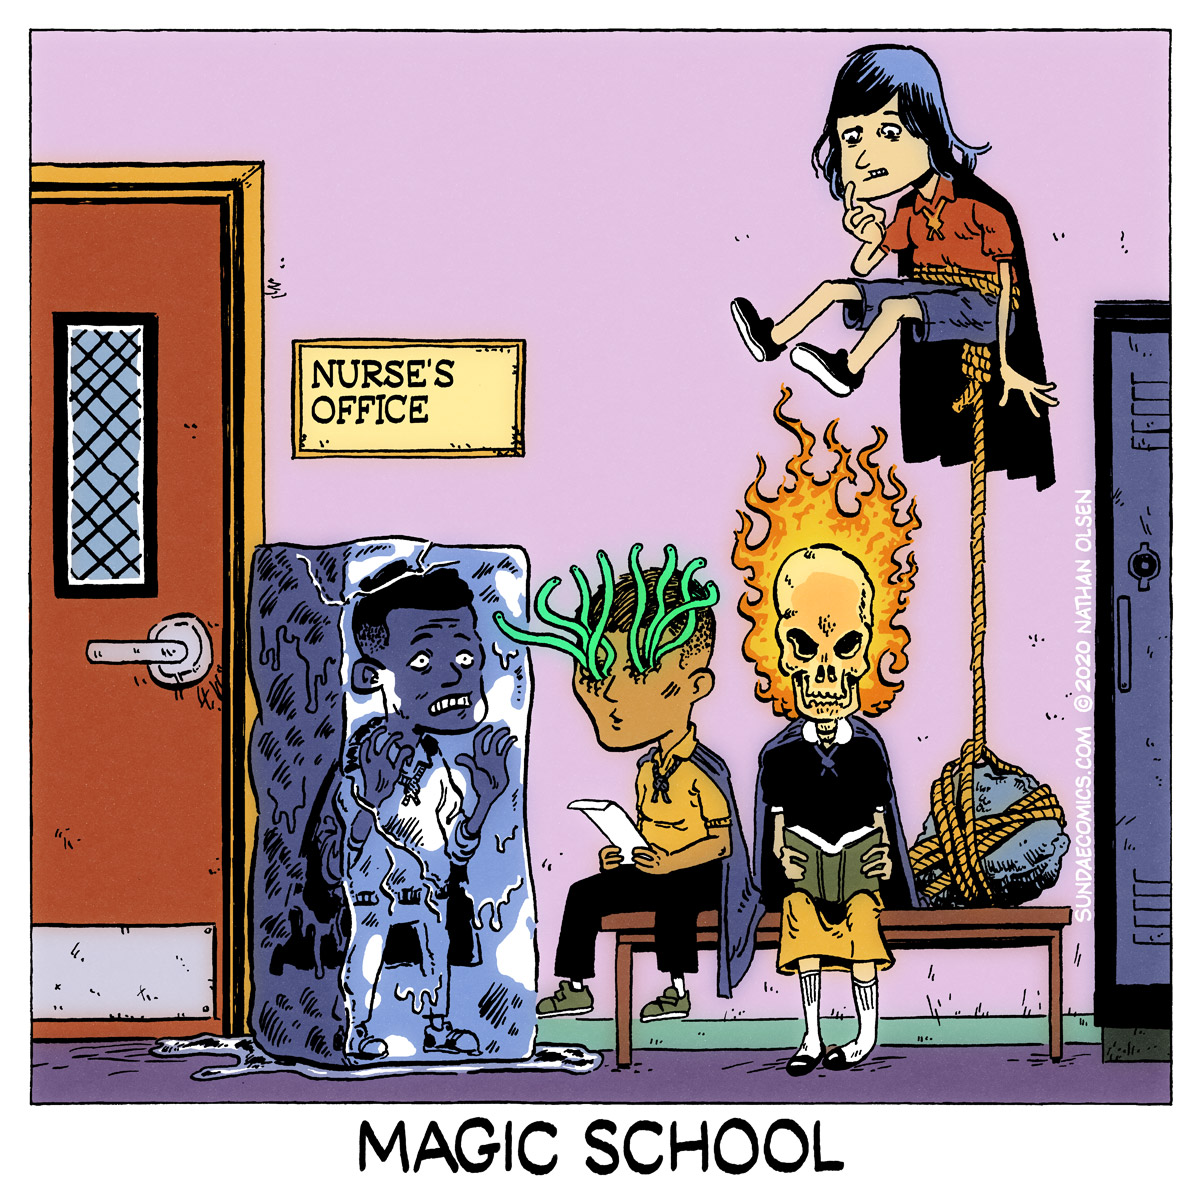 A webcomic about a group of students sent to the Nurse's Office at Magic School.